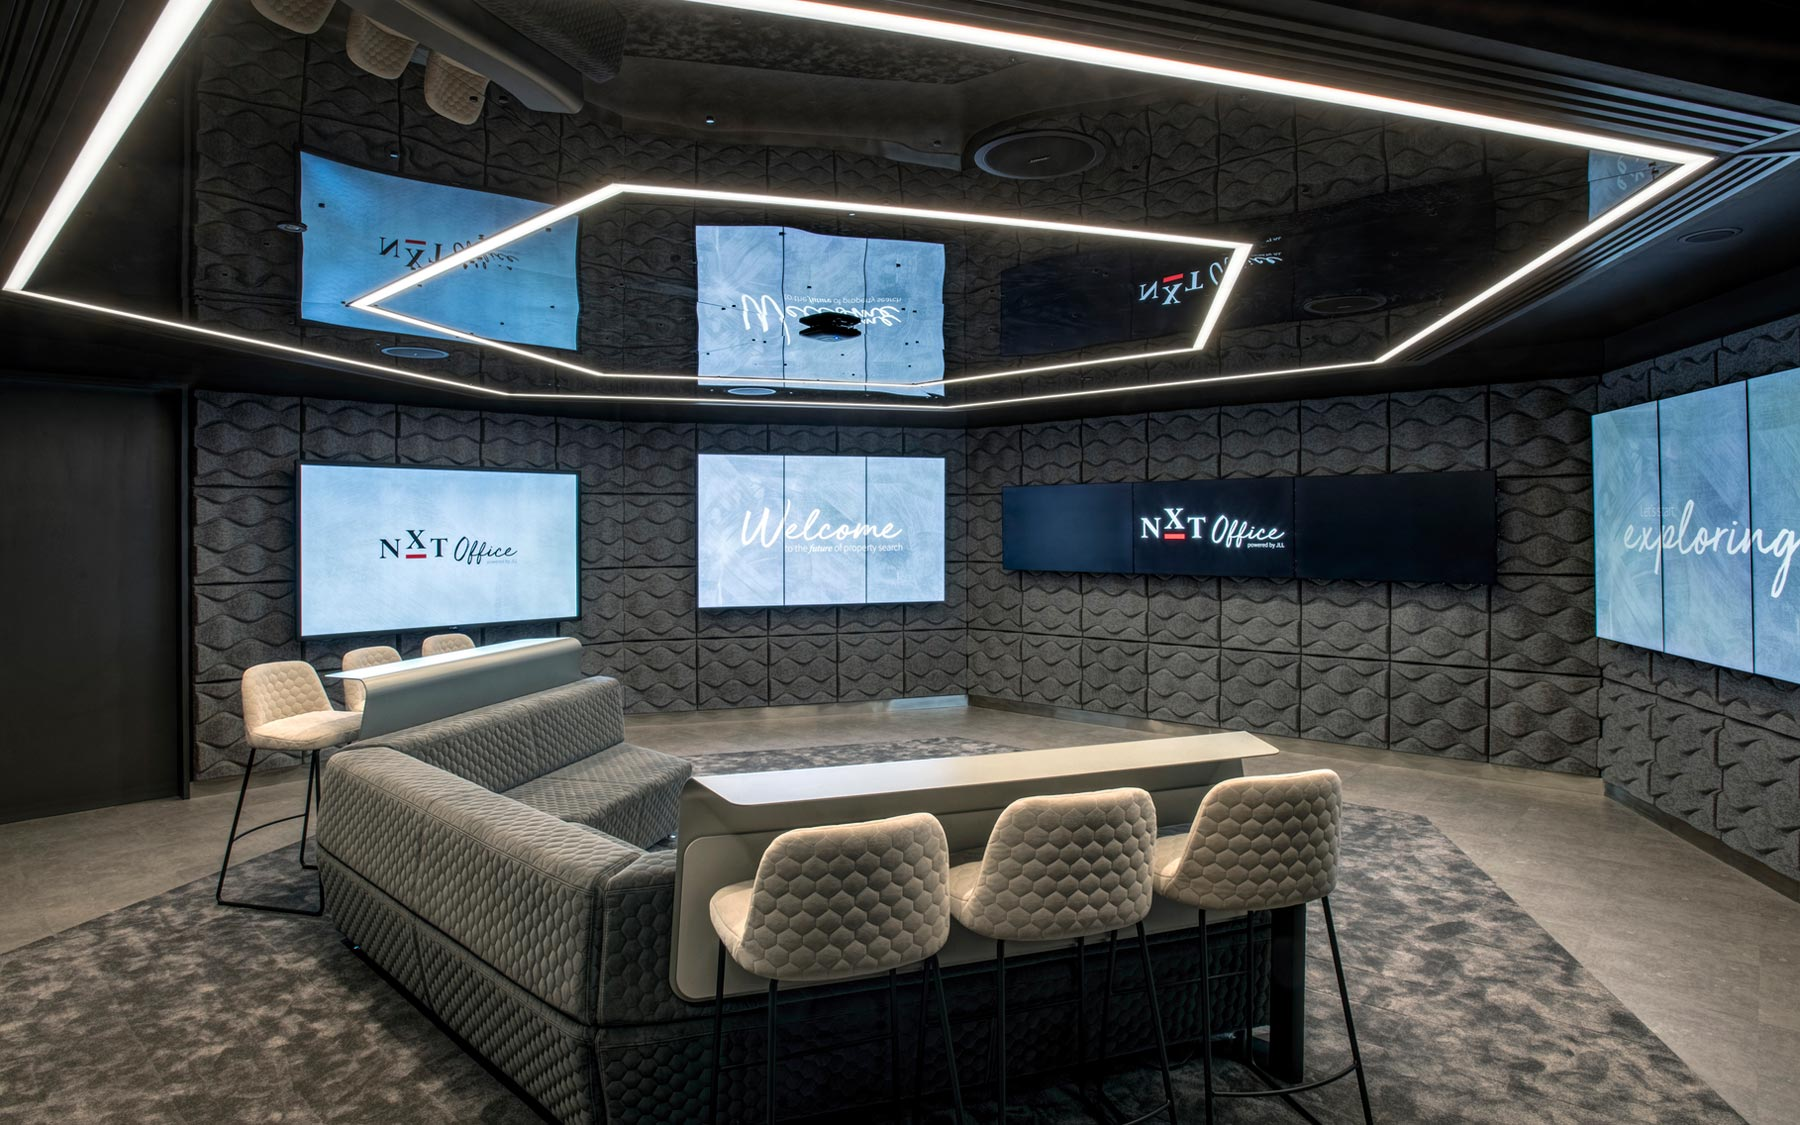 This is the NXT Office at JLL